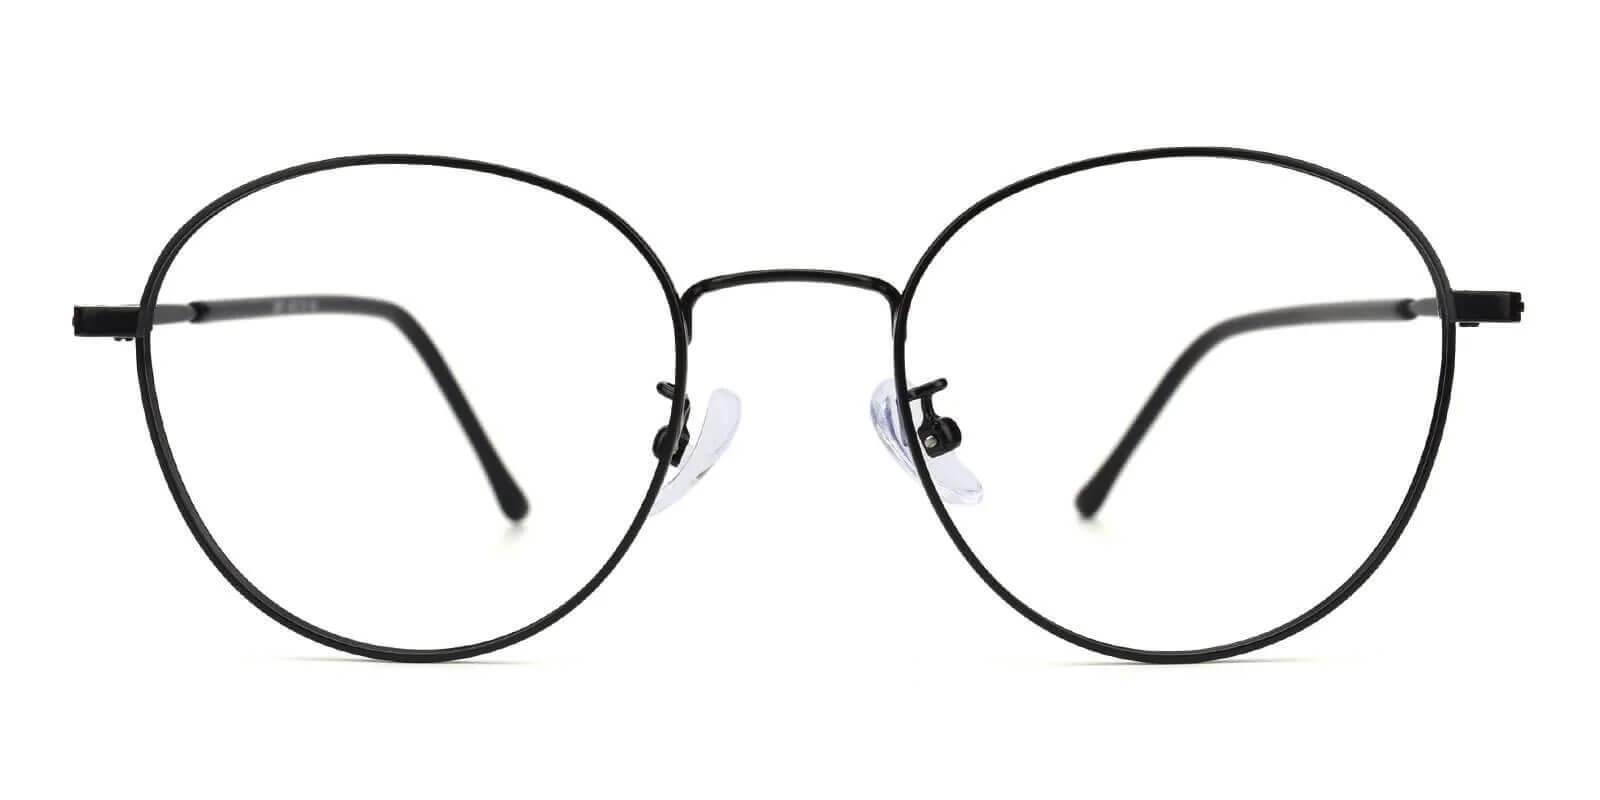 Joe Black Metal Eyeglasses , NosePads Frames from ABBE Glasses